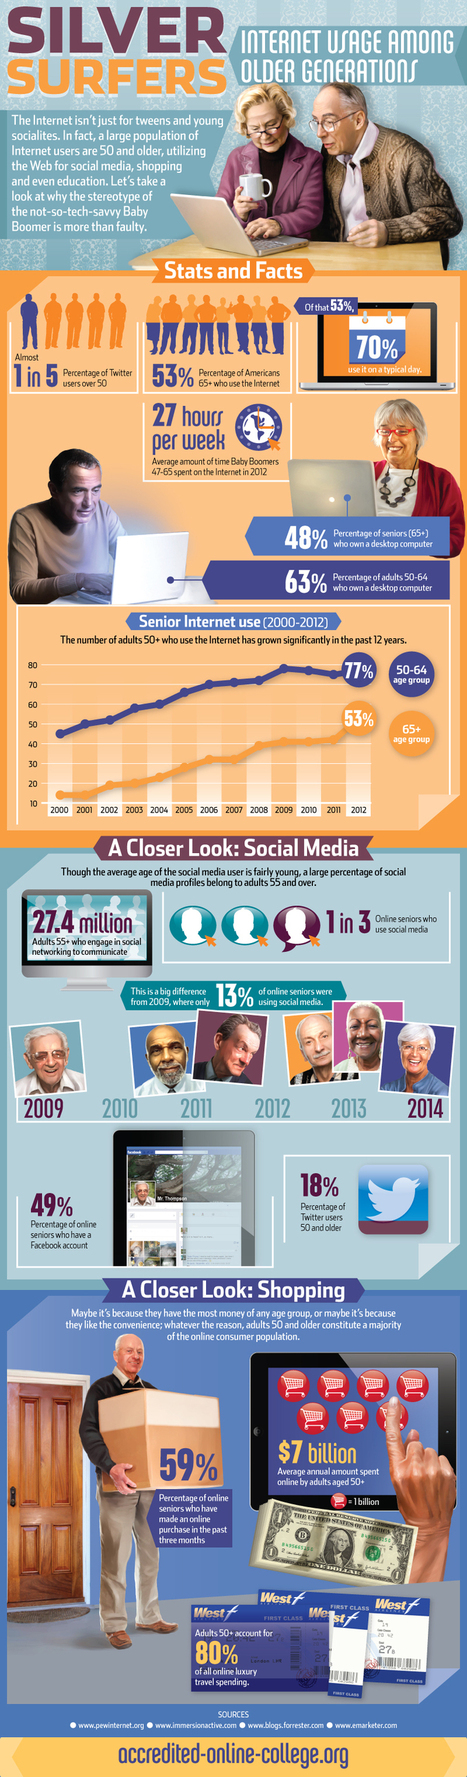 Silver Surfers: How The Older Generation Uses Social Media [INFOGRAPHIC] - AllTwitter | Human Behaviour | Scoop.it